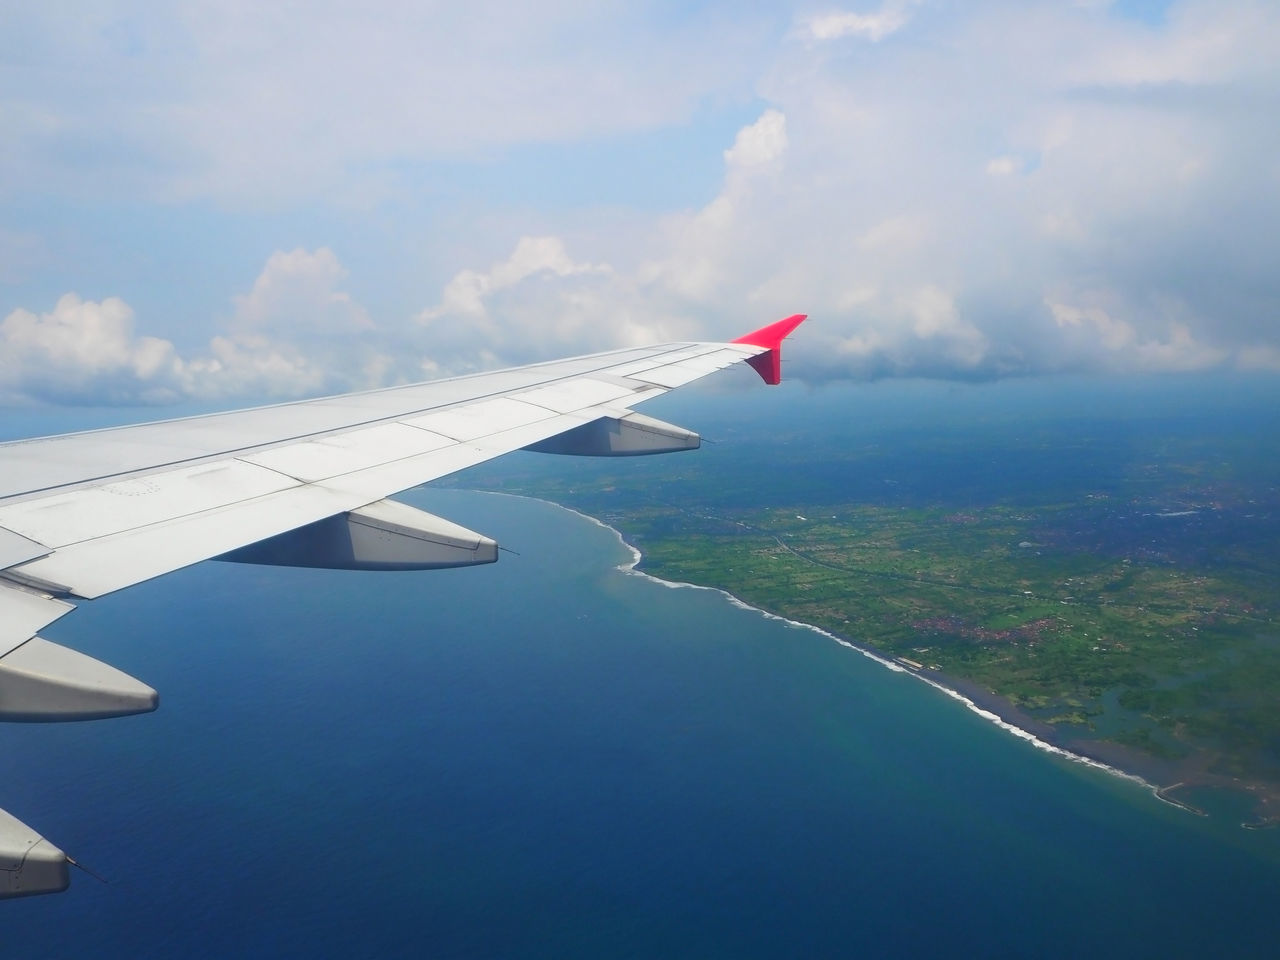 💙✈️ Flying High ✈️💙 Travel Aerial View Waves, Ocean, Nature Sea And Sky Aircraft Wing Airplane Airplane Wing Beauty In Nature Blue Sky Blue Wave Cloud Cloud - Sky Day Exceptional Photographs Flying Landscapes Nature Ocean Outdoors Sea Sky Tadaa Community Tranquility Transportation